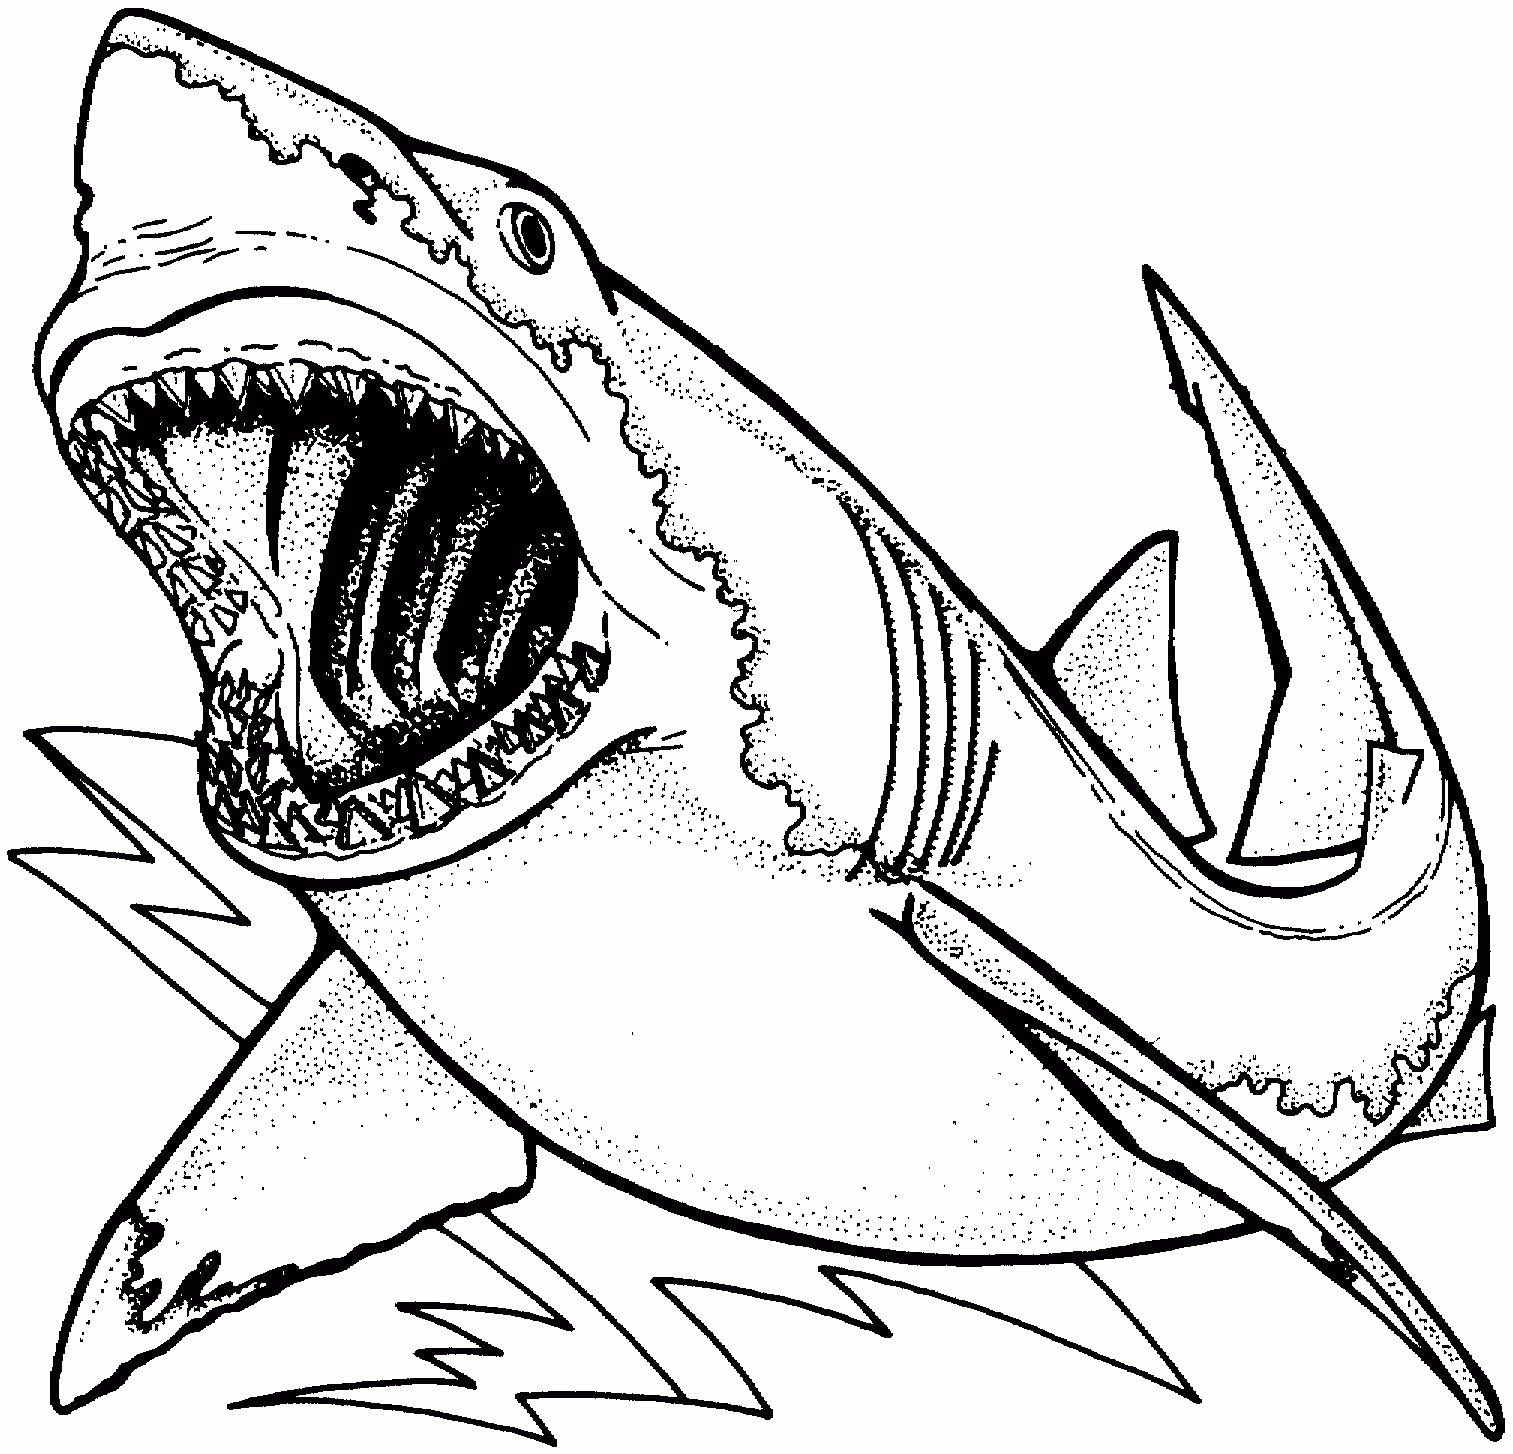 Military Coloring Pages Pdf Awesome Promise Shark Colouring Coloring Page Unique Shark Coloring Pages Animal Coloring Pages Cars Coloring Pages